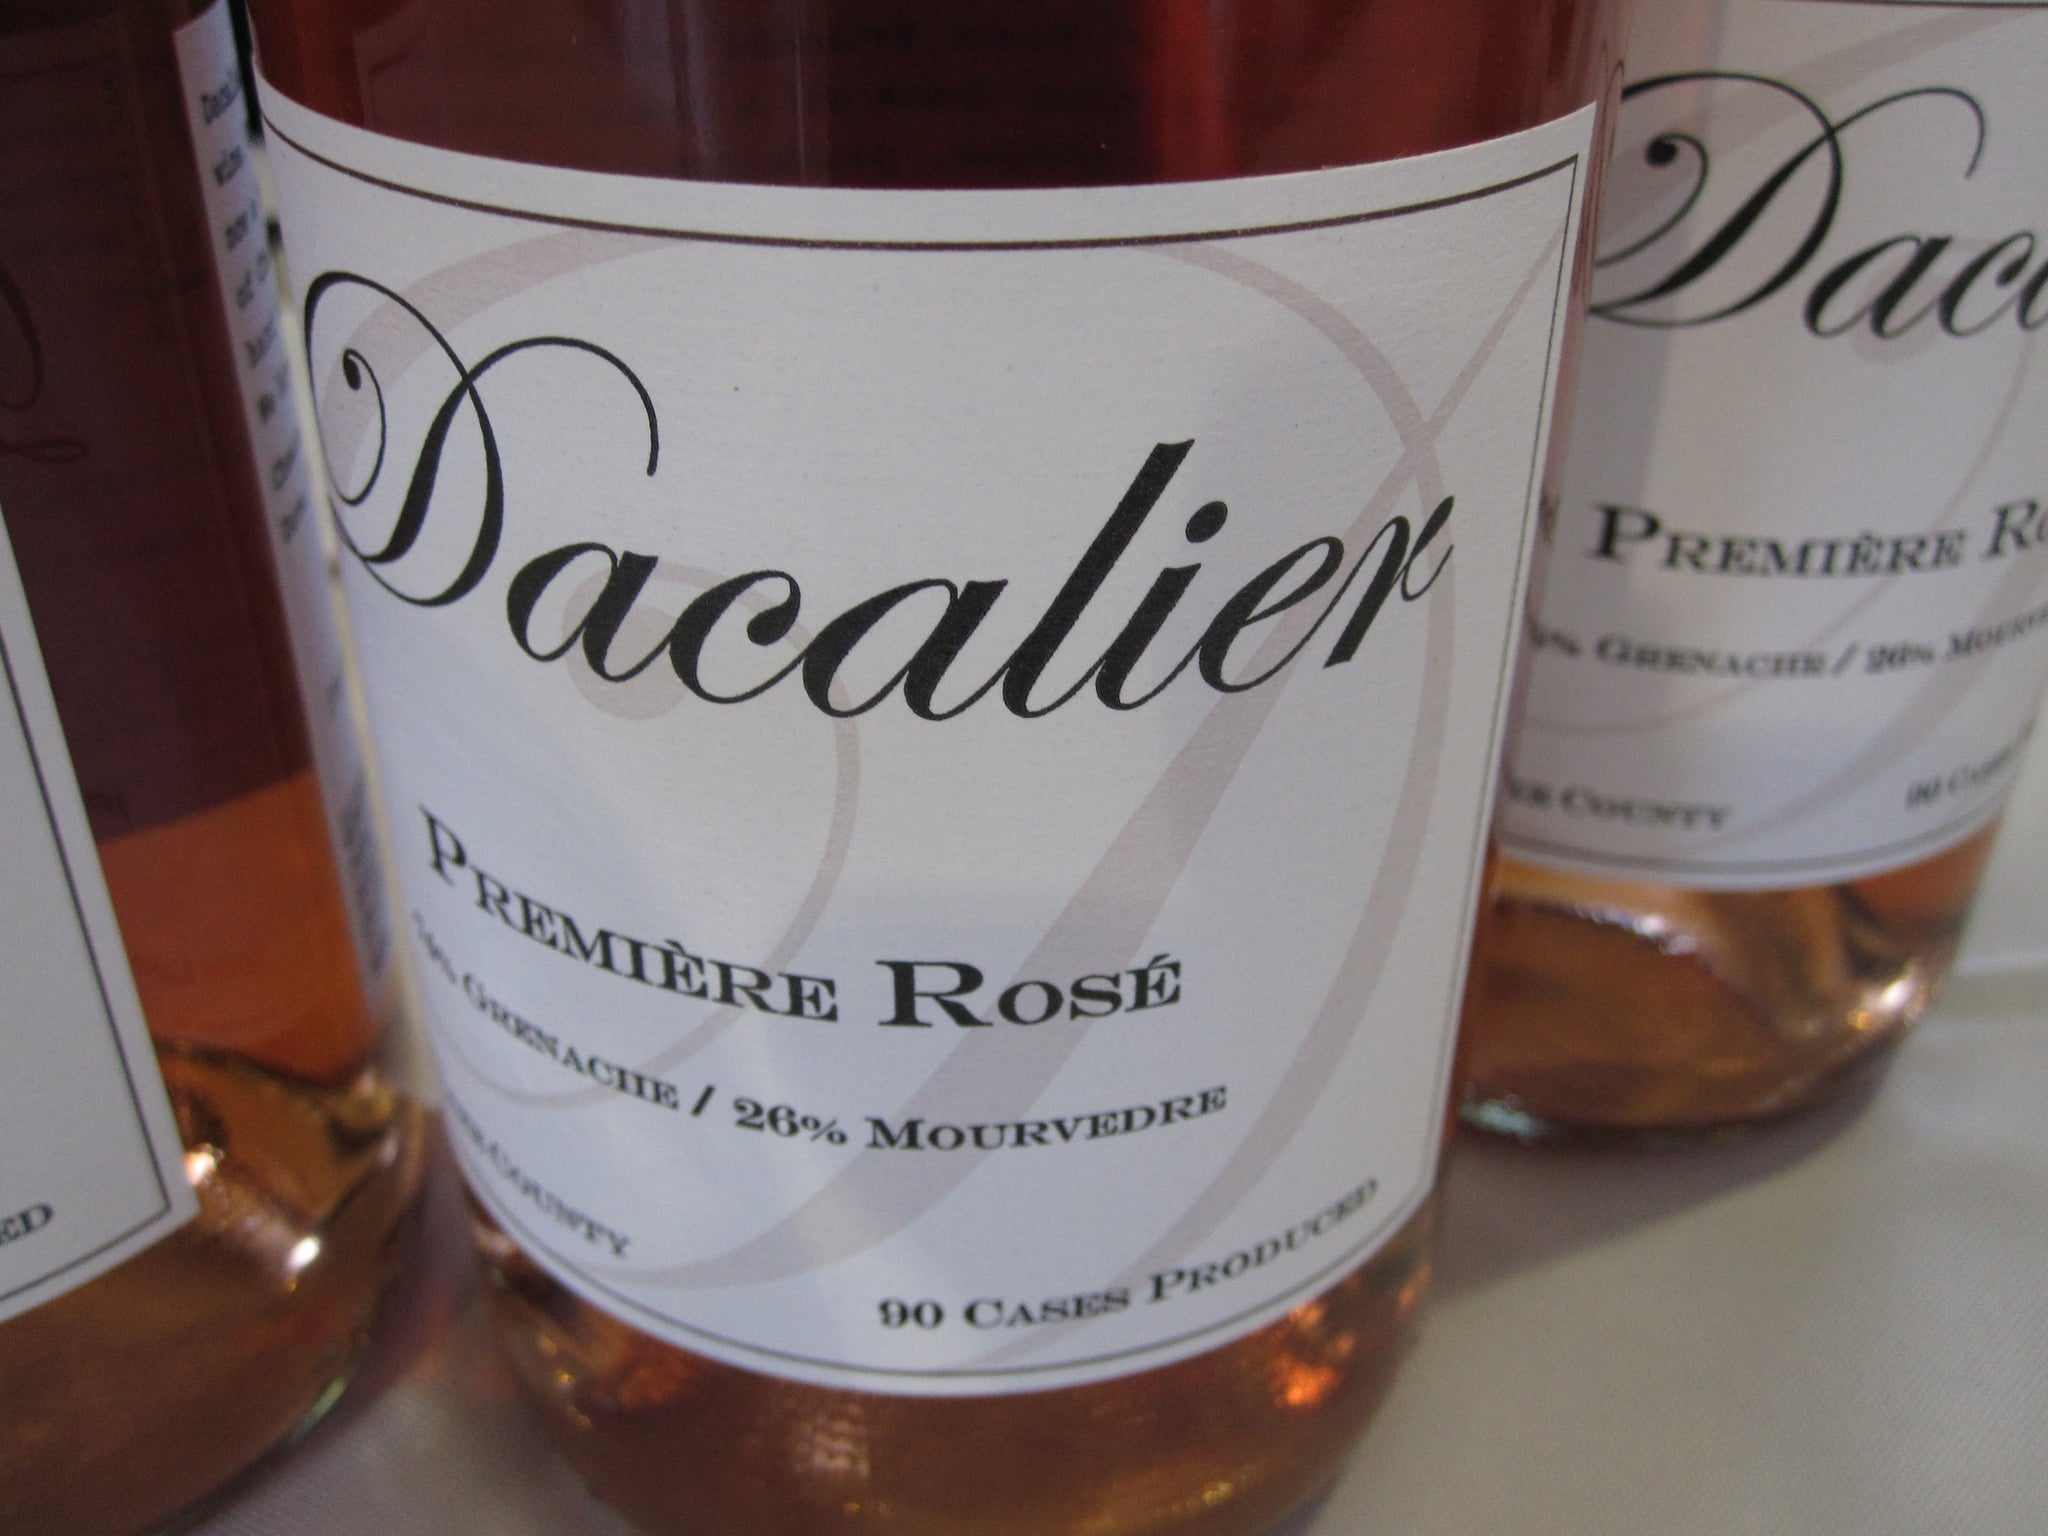 Dacalier's Rose has been winning a lot of awards. After one sip of the bone-dry, fruity Rose, I understood why!